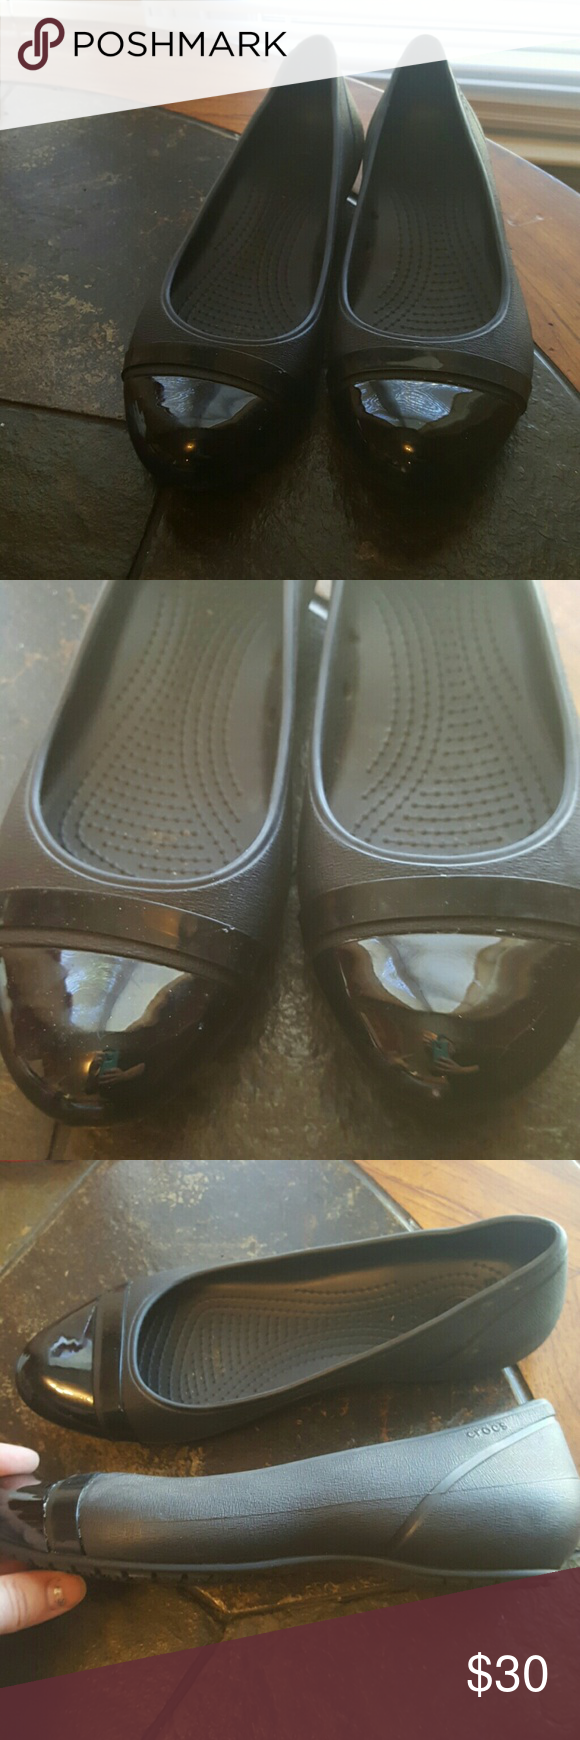 9m black crocs Worn one time. Very good condition. Smoke and pet free home. CROCS Shoes Flats & Loafers